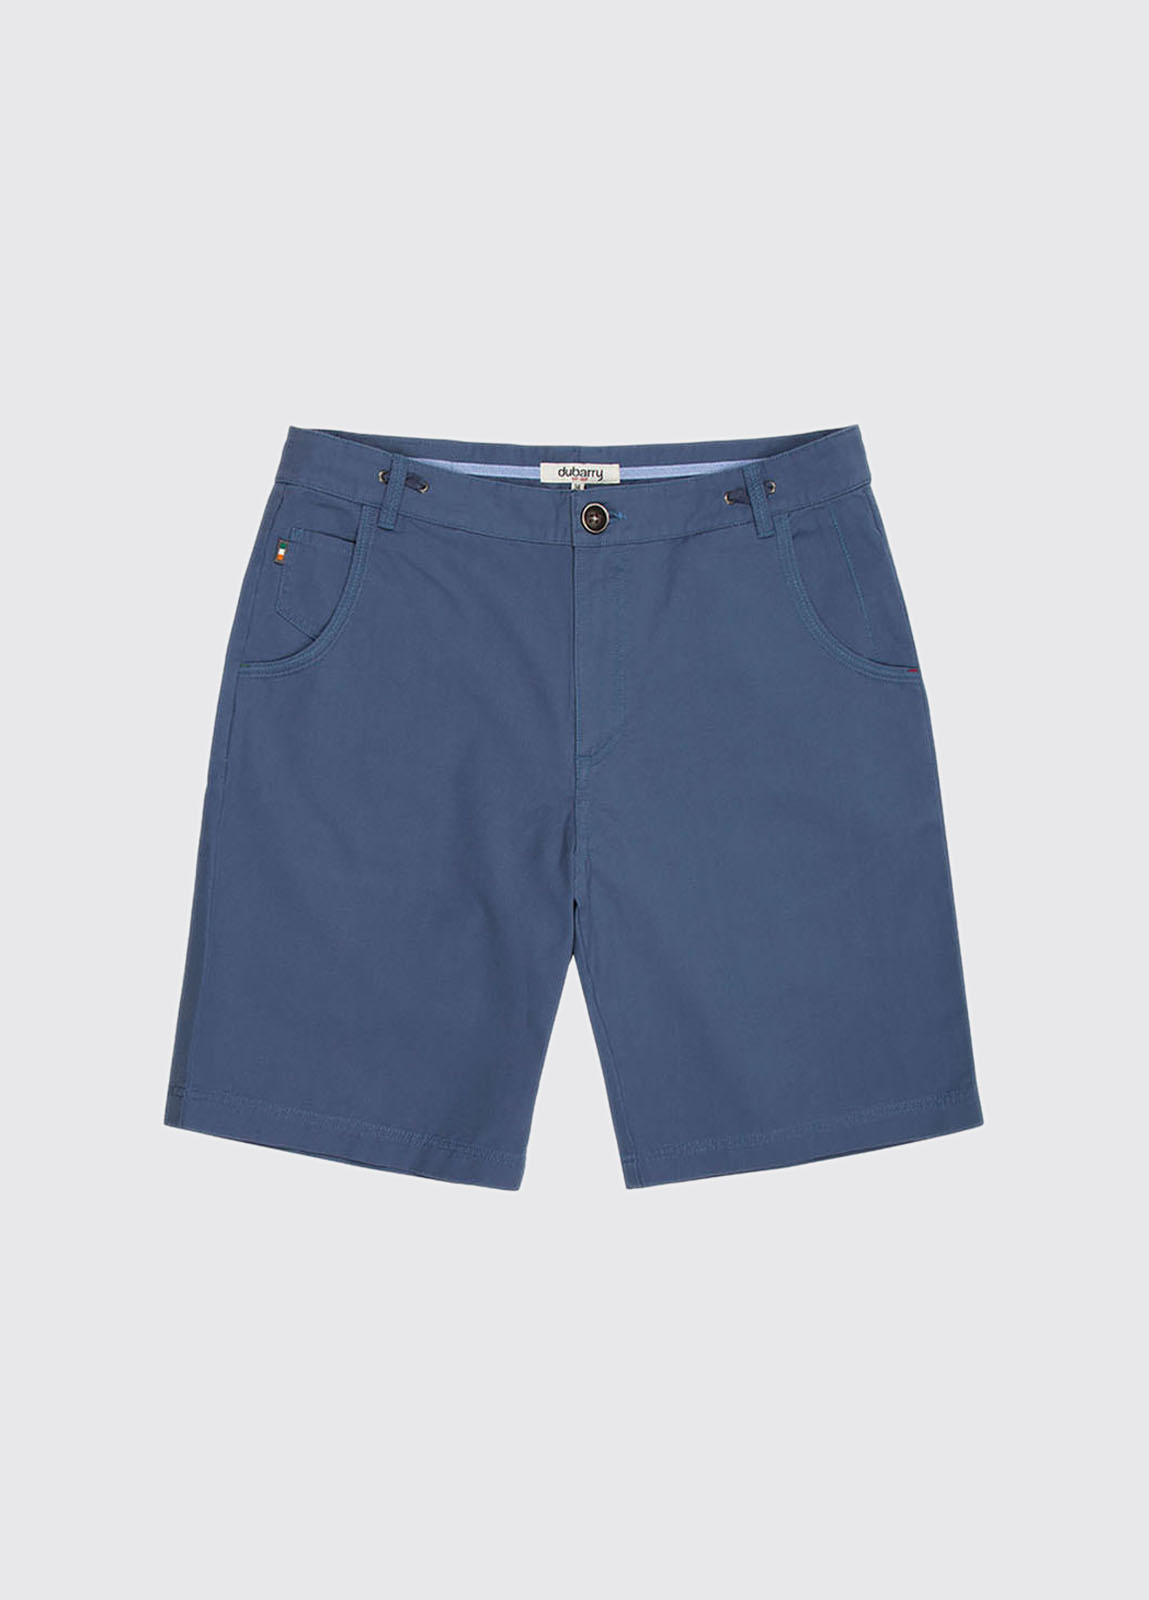 Erne Mens Shorts - Denim